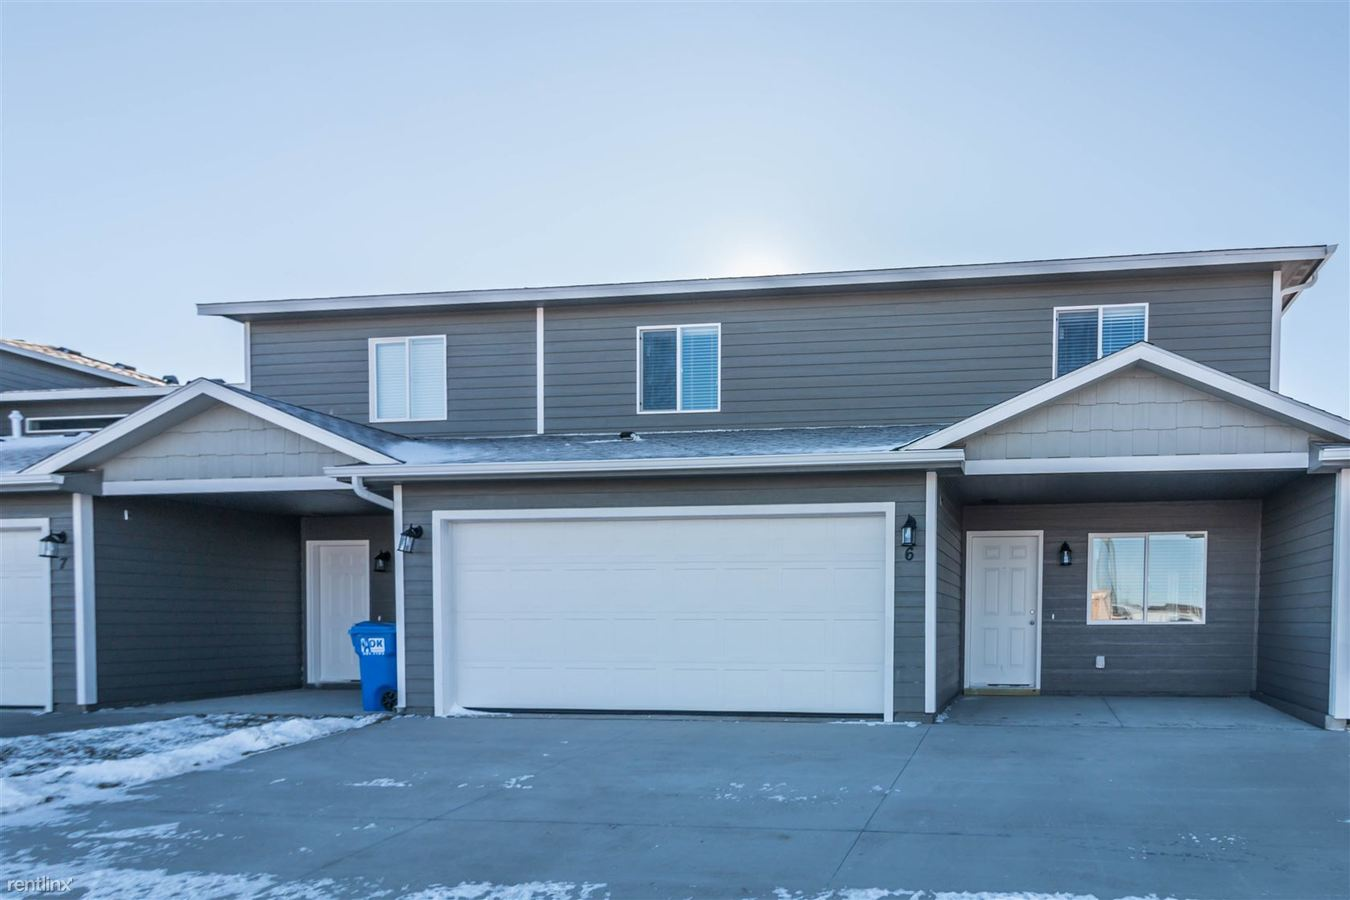 1 Bedroom 1 Bathroom House for rent at Tiger Way Town Homes And Apartments in Harrisburg, SD